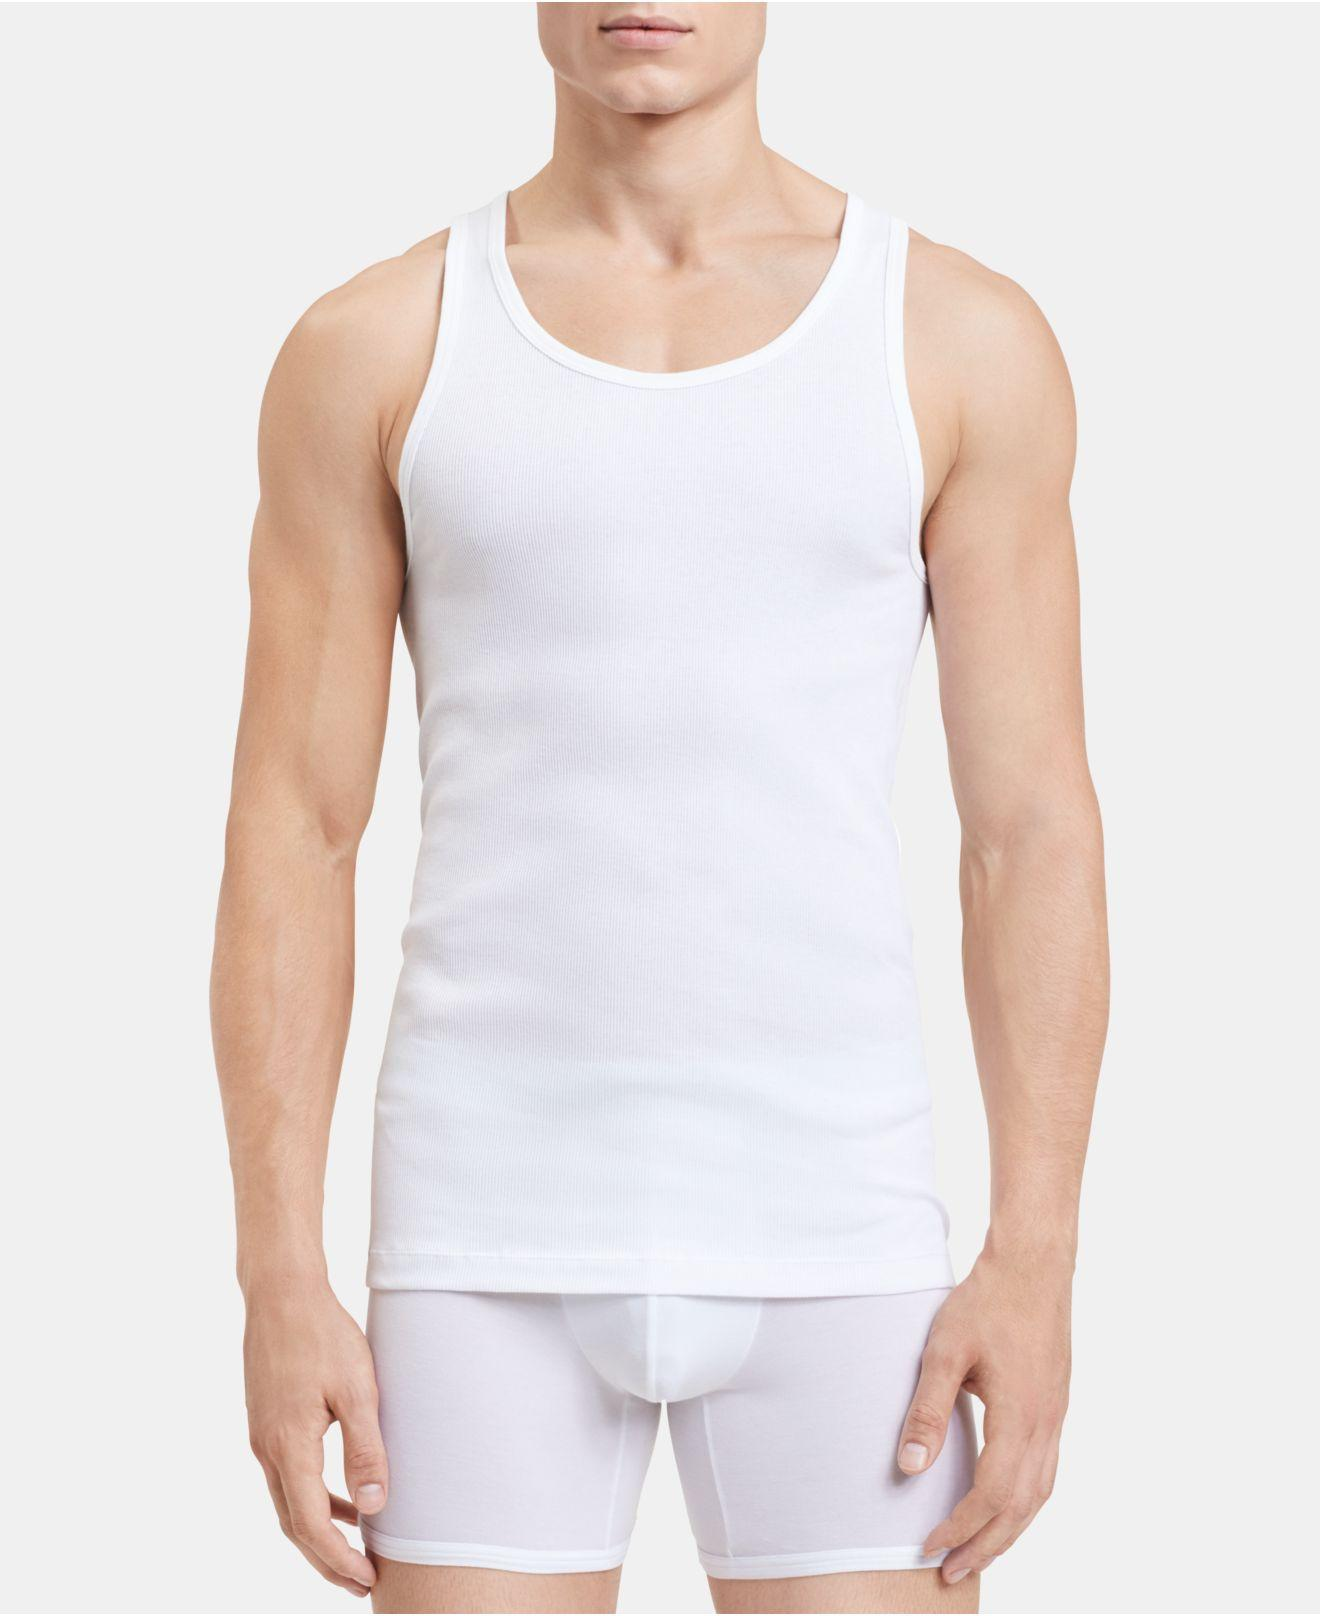 f47d4061fb3159 Lyst - Calvin Klein 5-pk. Cotton Classics Tank Tops in White for Men